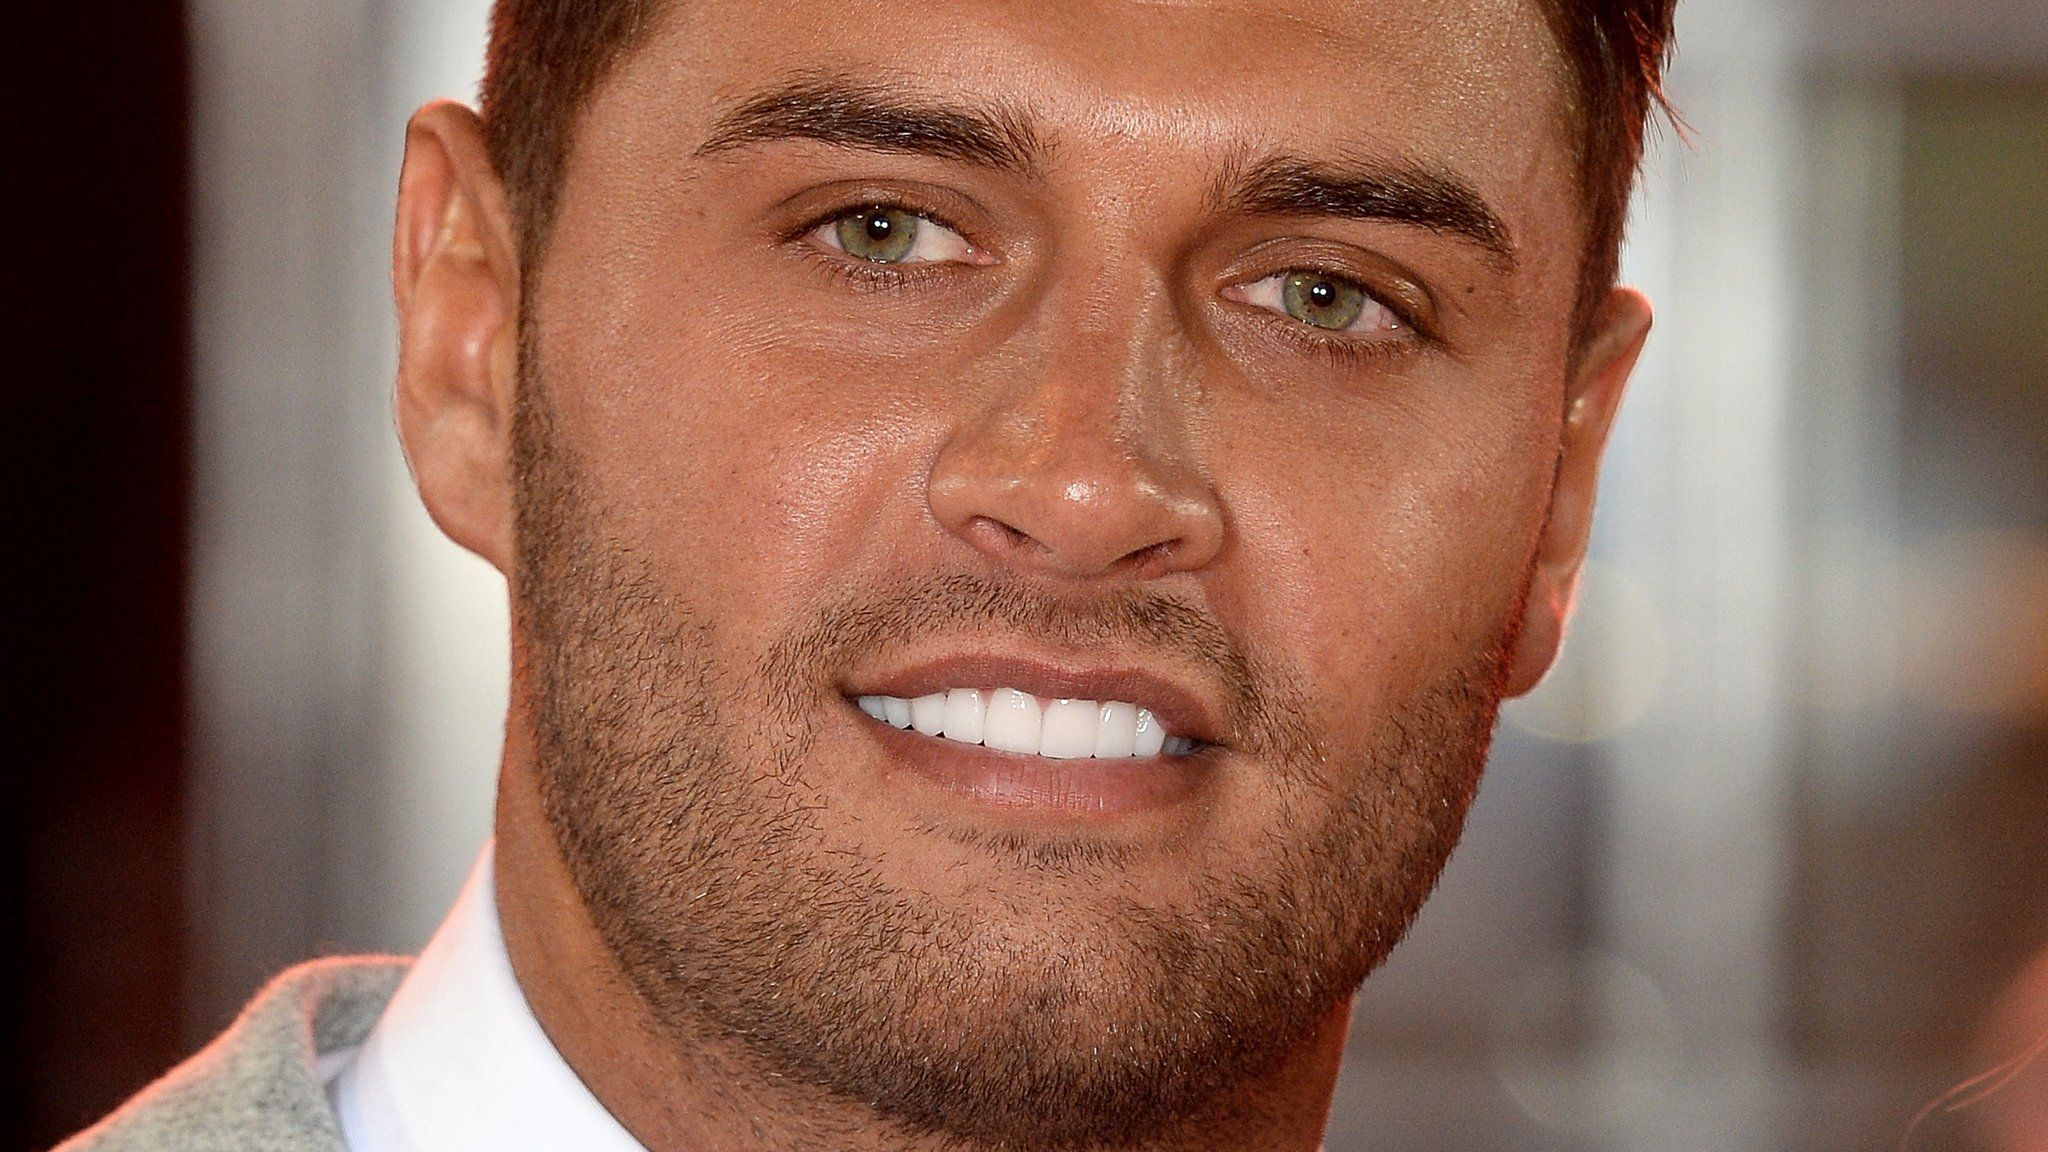 Mike Thalassitis Love Island Star Left Notebook At Scene Of Death Bbc News